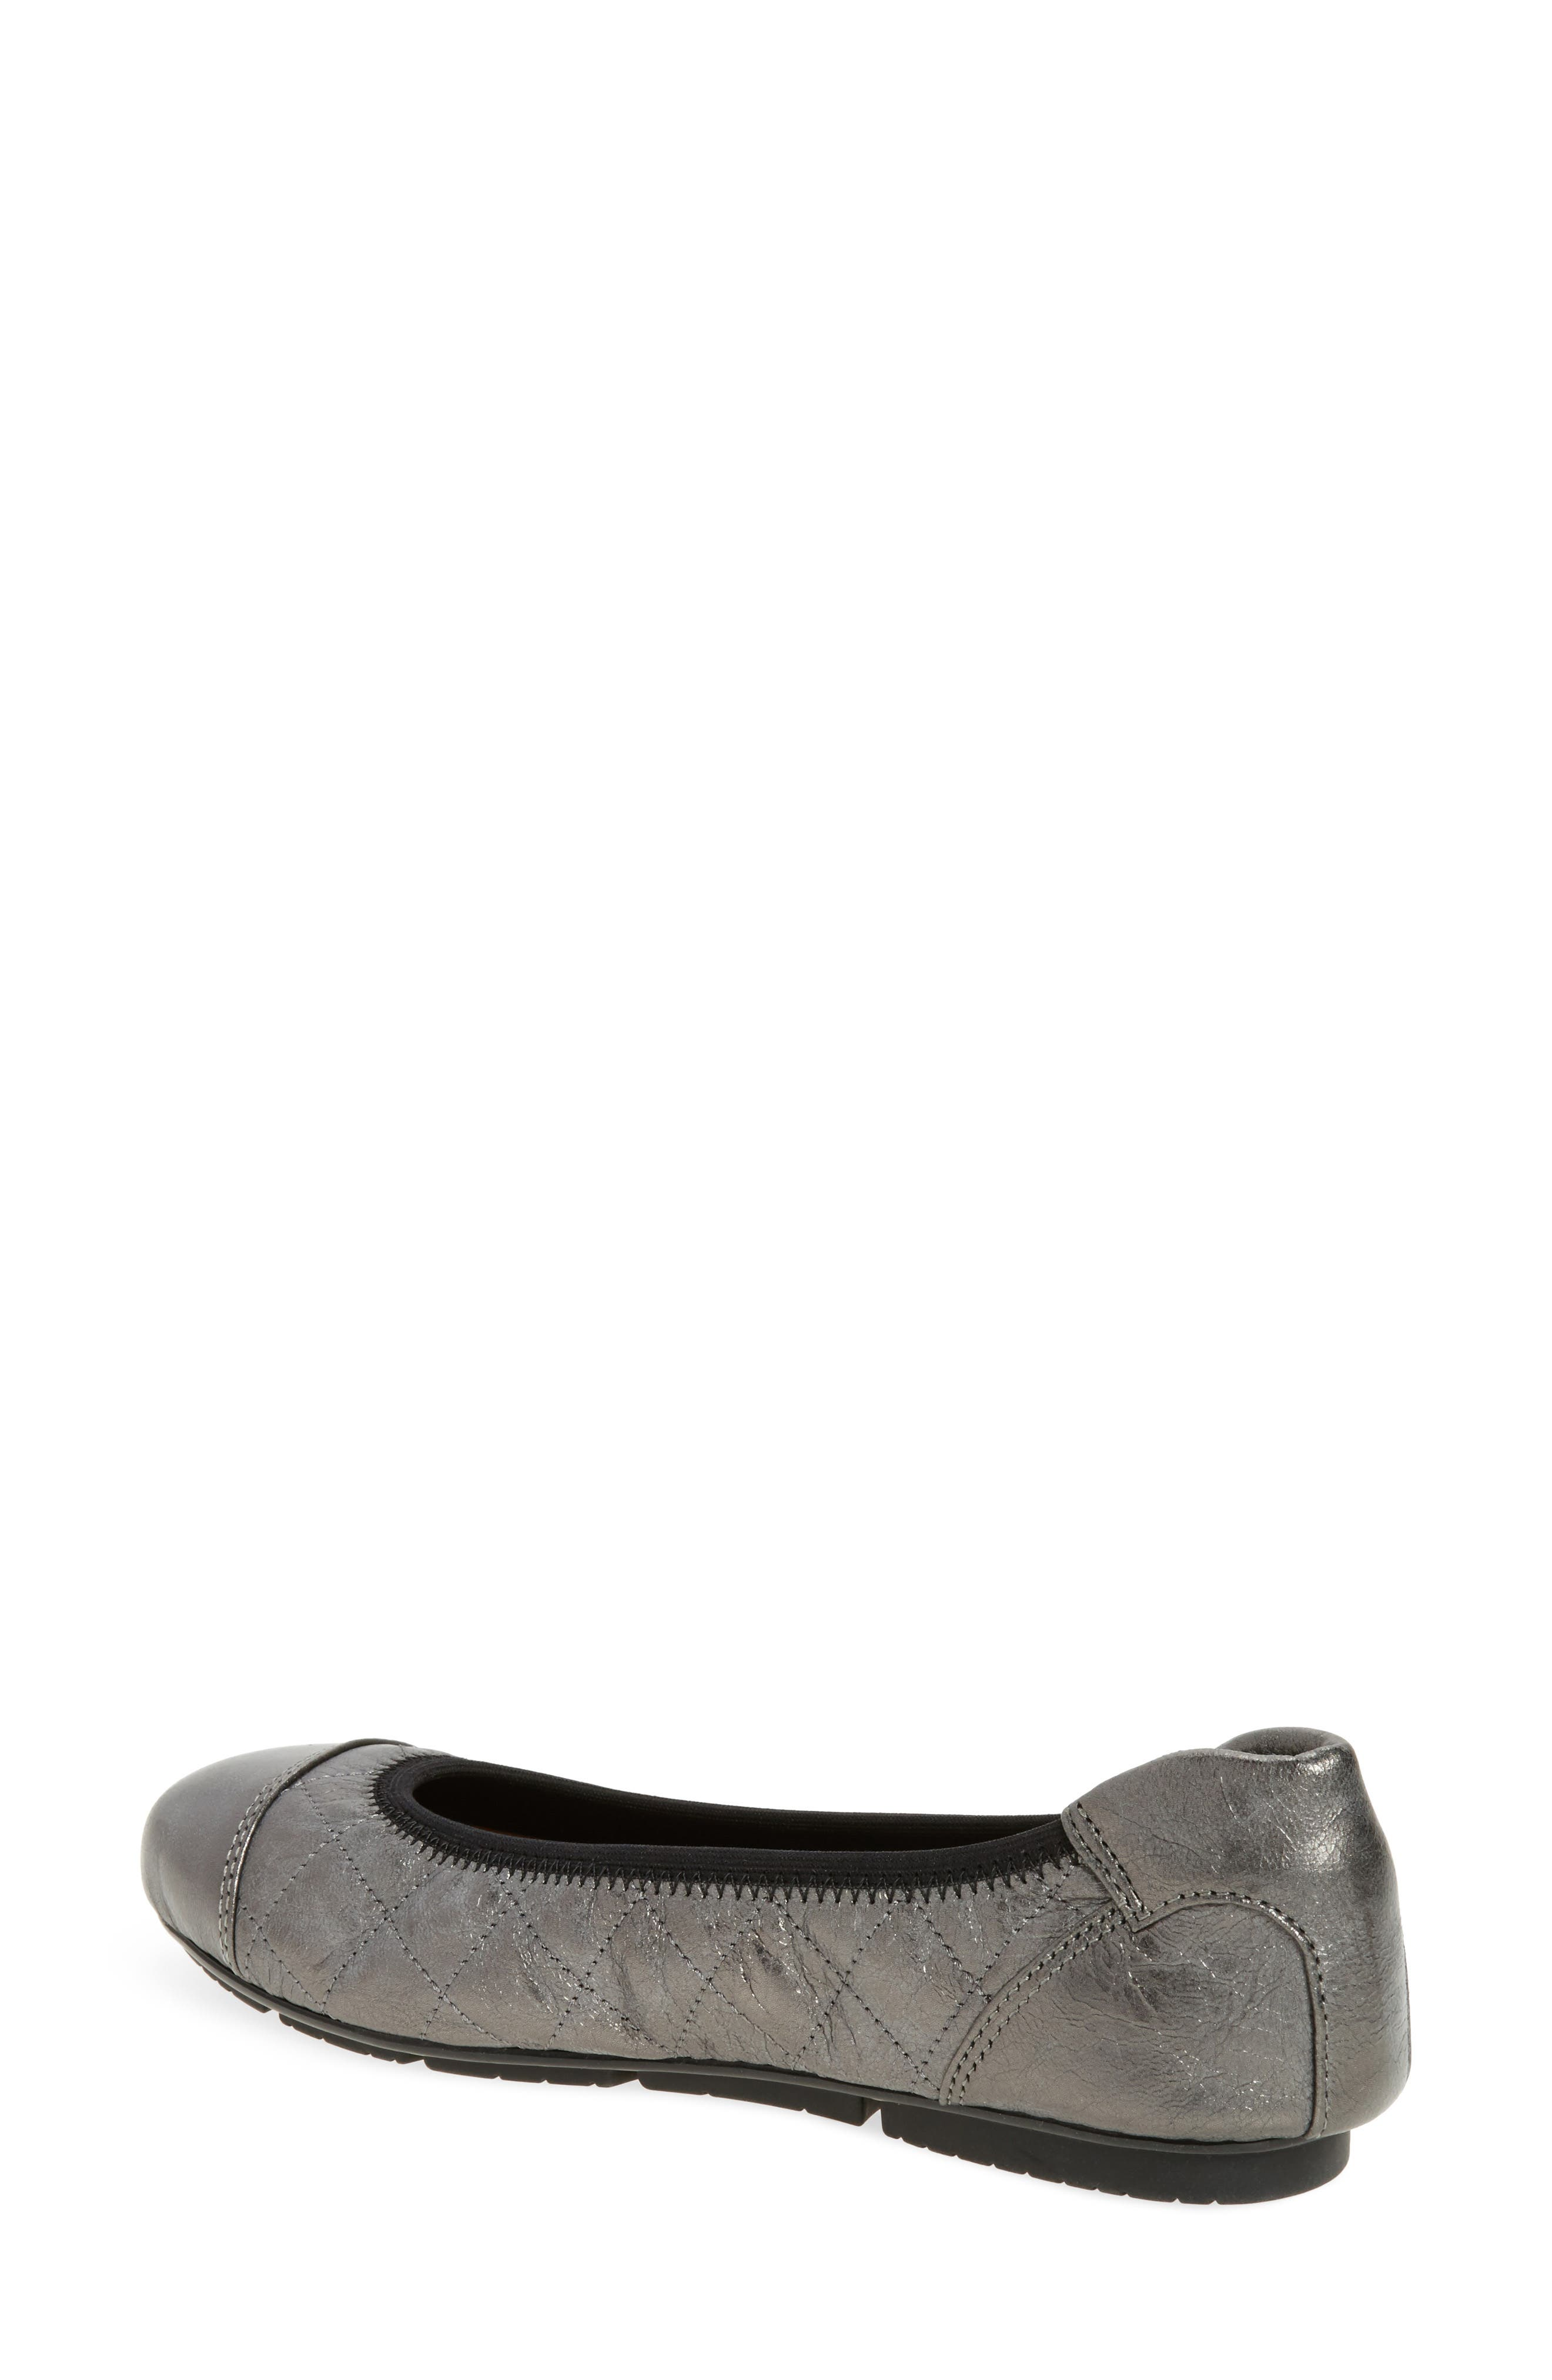 Ava Quilted Ballet Flat,                             Alternate thumbnail 5, color,